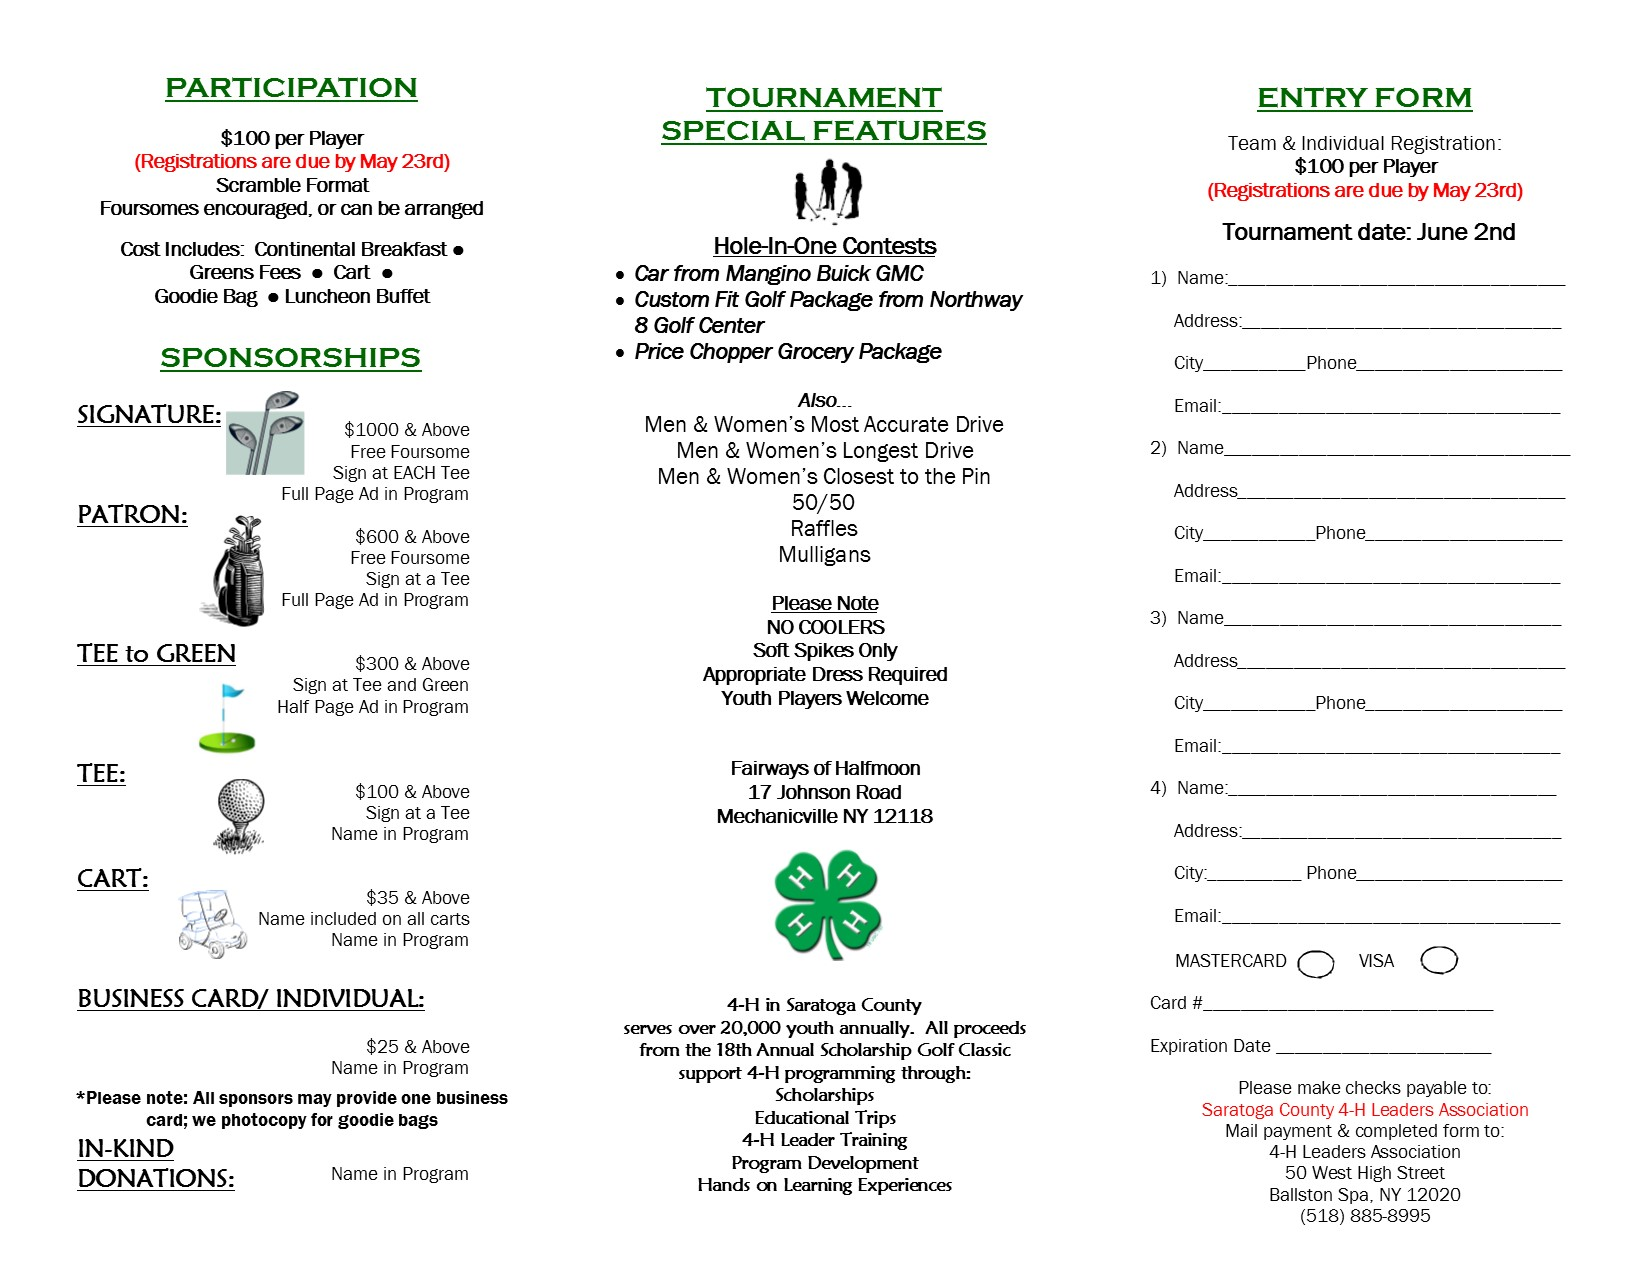 Cornell Cooperative Extension | 19th Annual Scholarship Golf